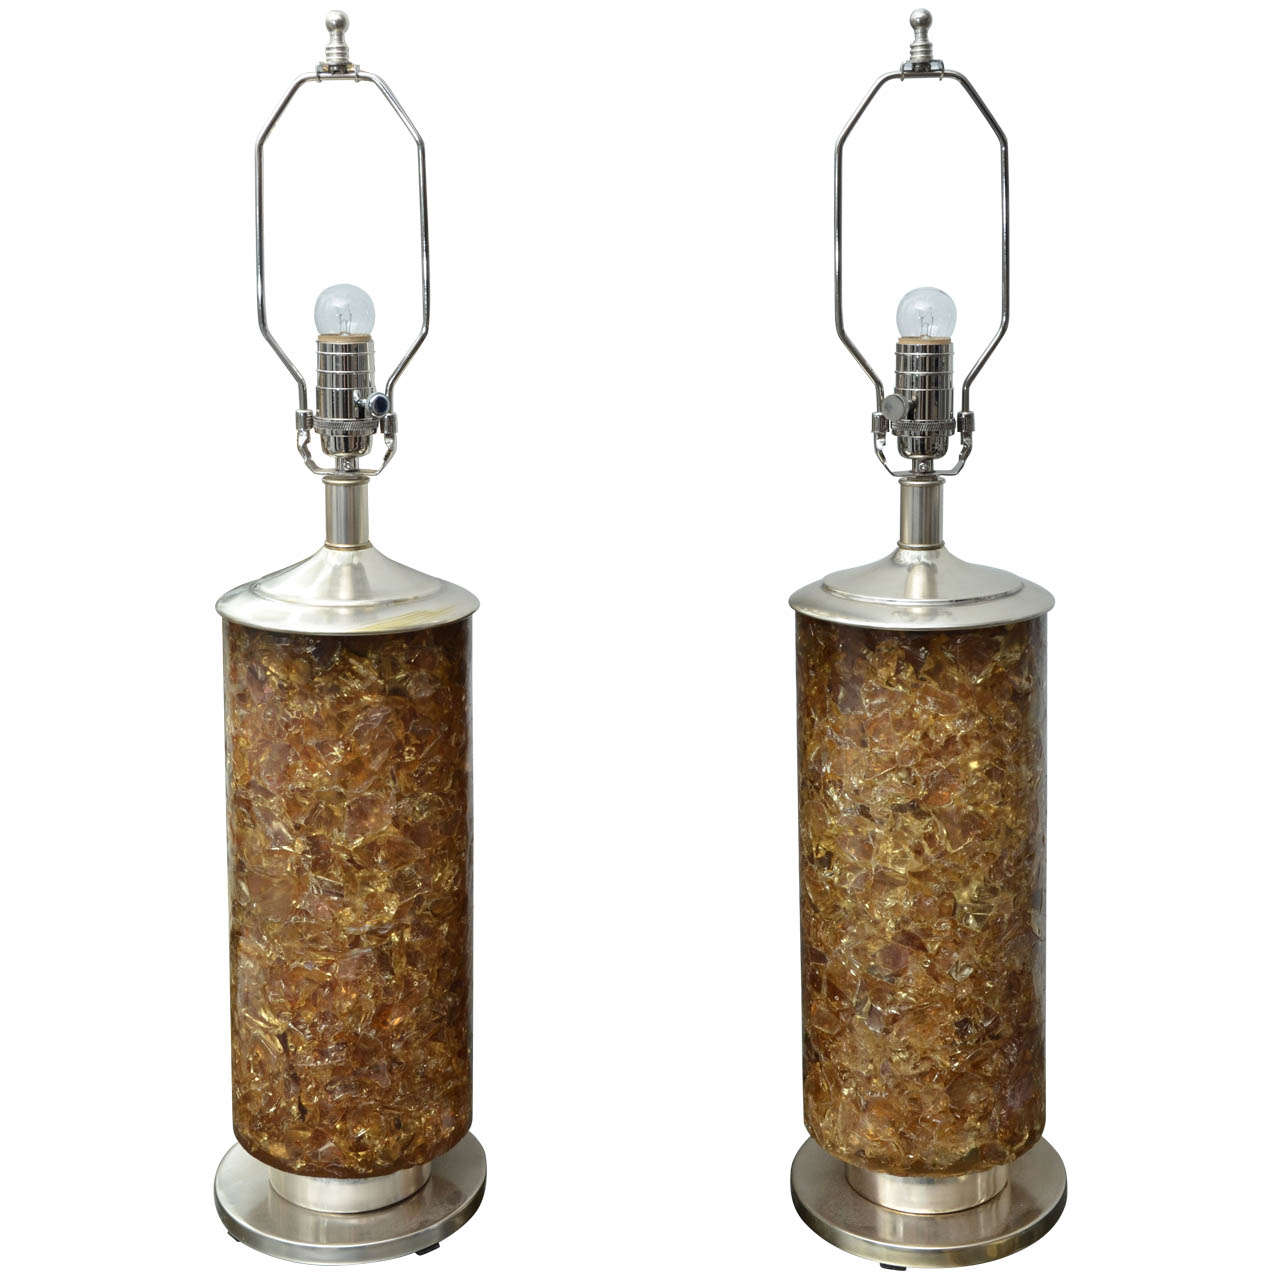 Pair of Amber Resin Lamps with Optional Interior Light